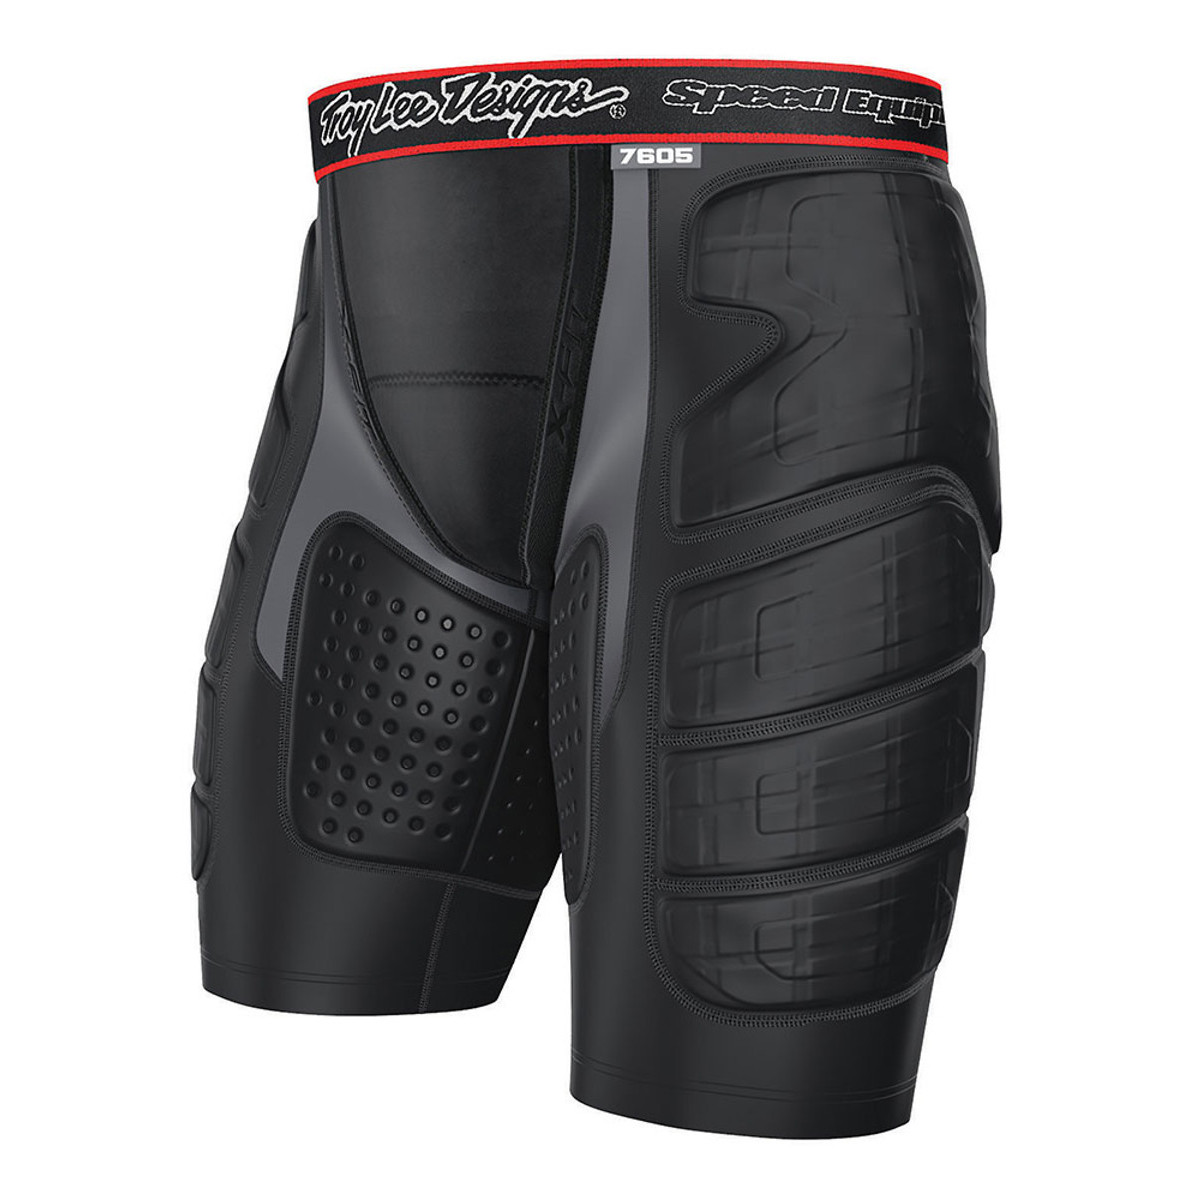 Troy Lee Designs 7605 Ultra Protective Short  TLD 7605 ULTRA PROTECTIVE SHORT